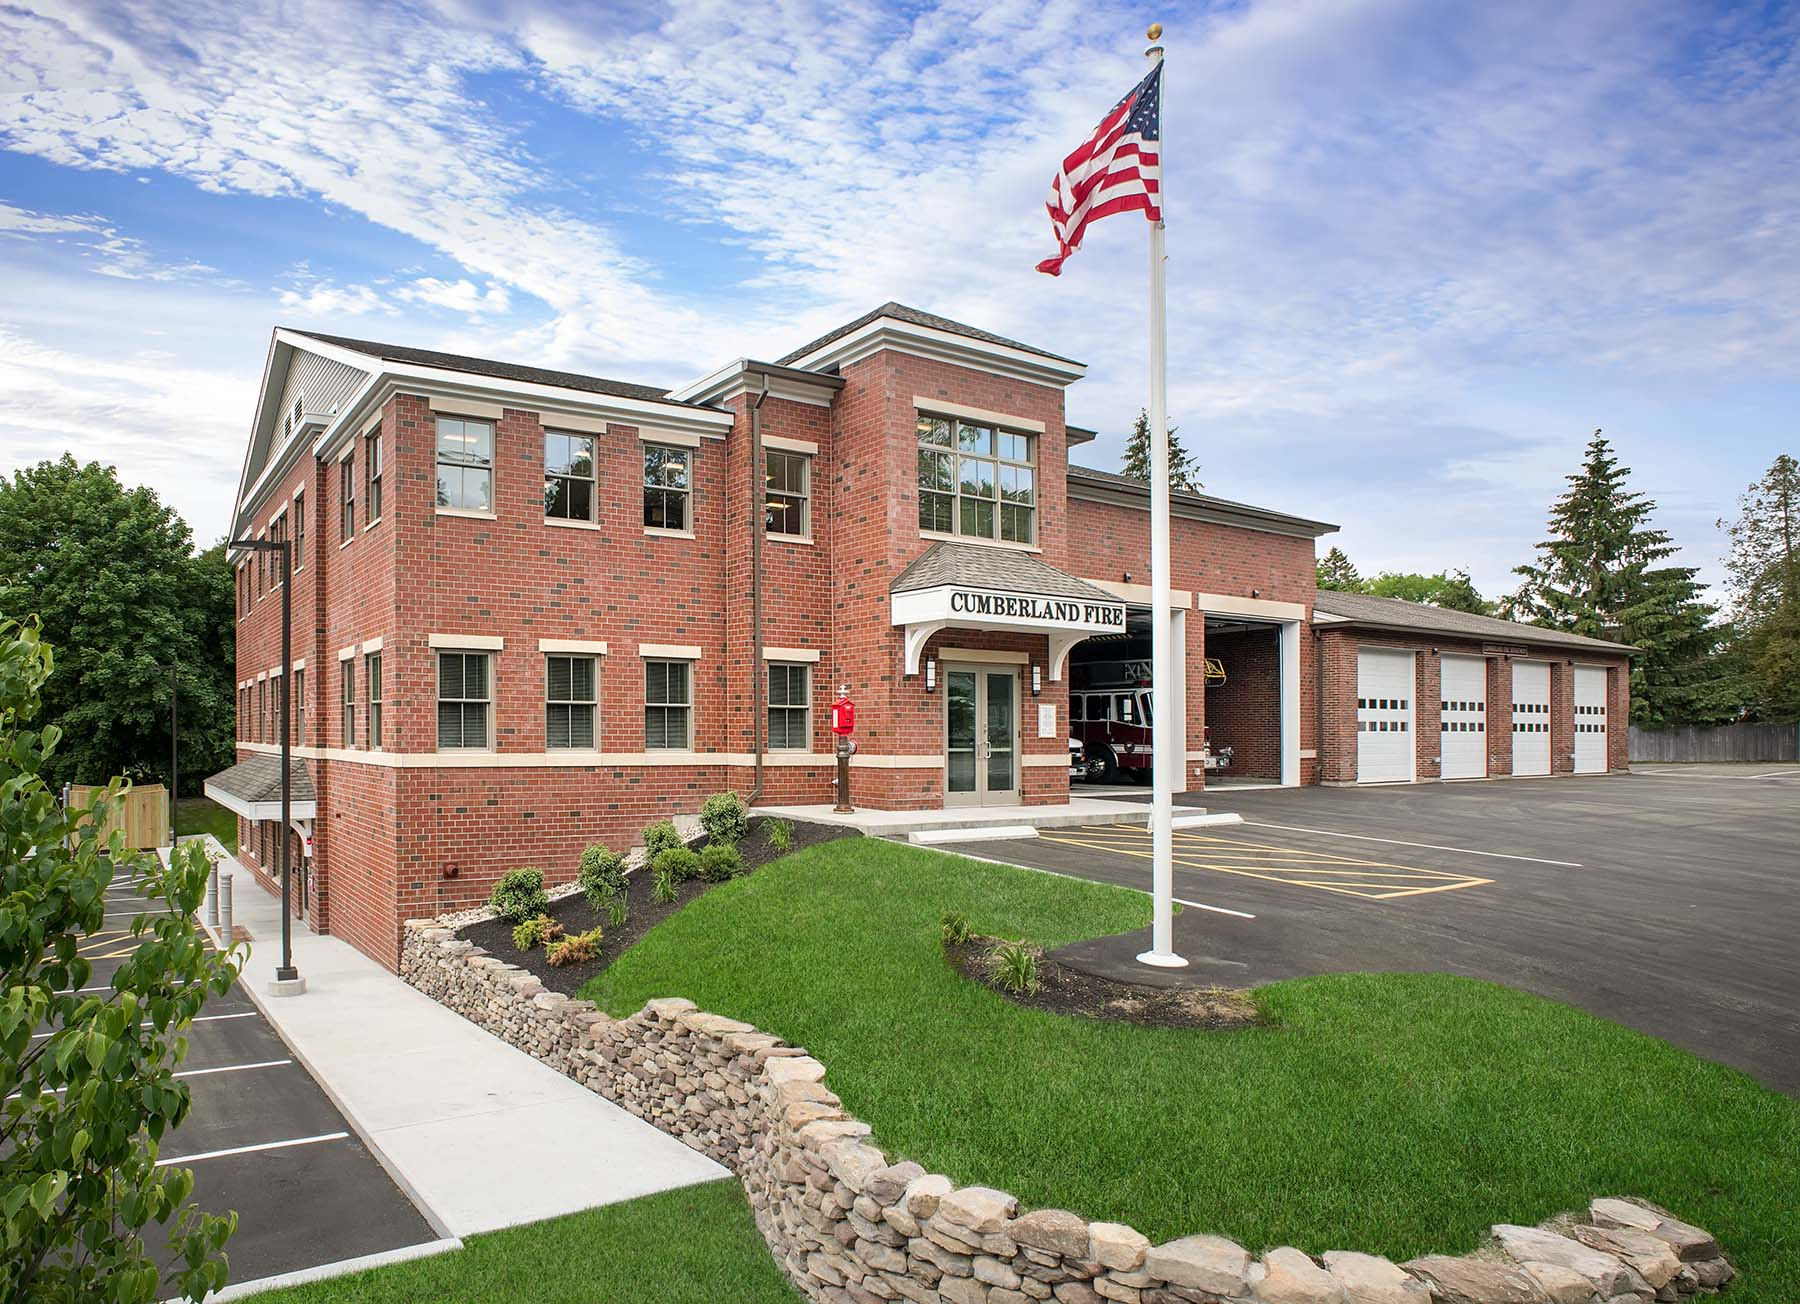 Cumberland Central Fire Station Project Details